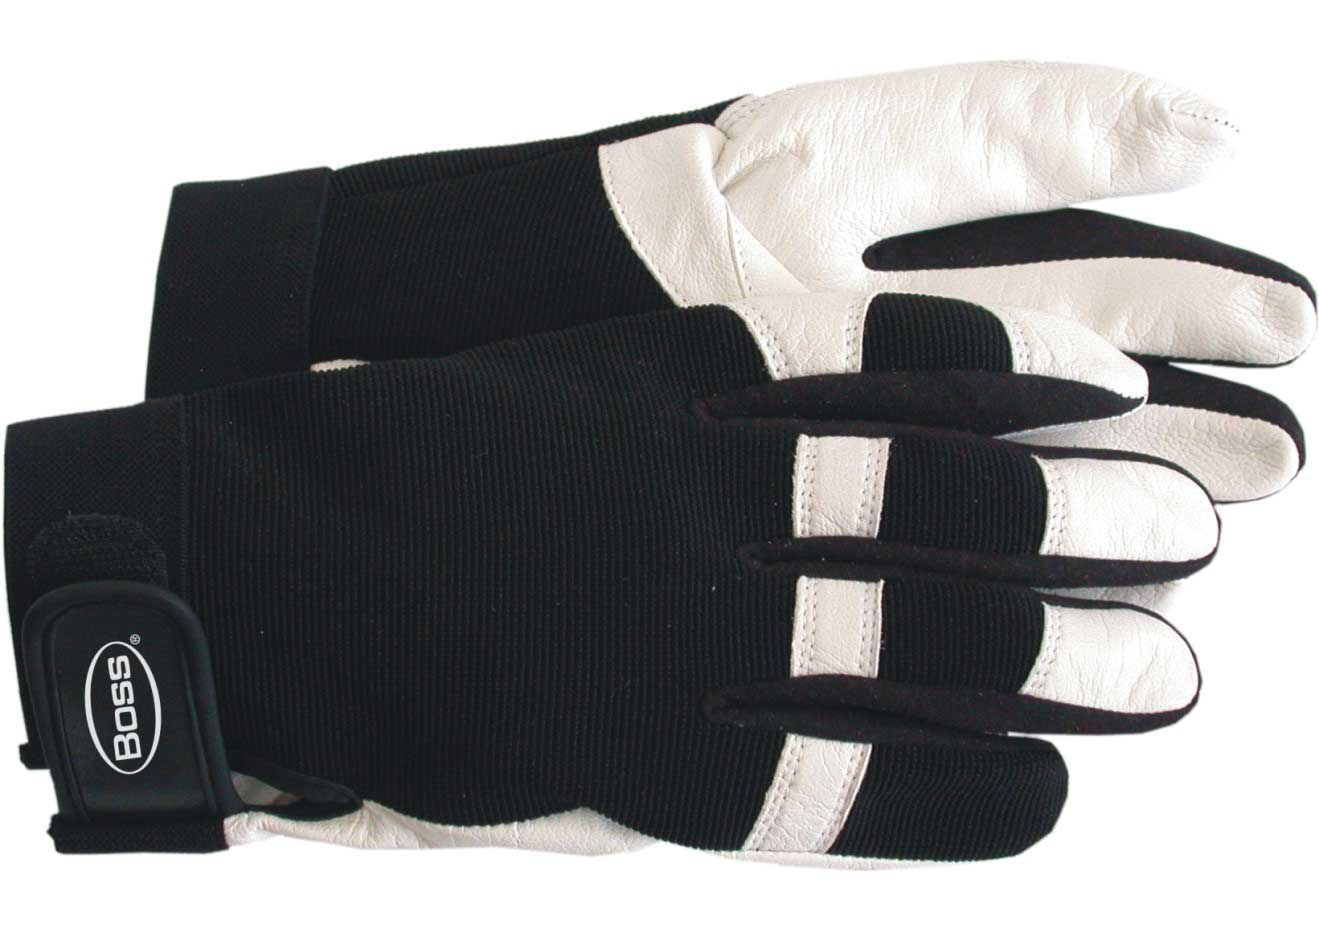 Goatskin With Spandex Glove